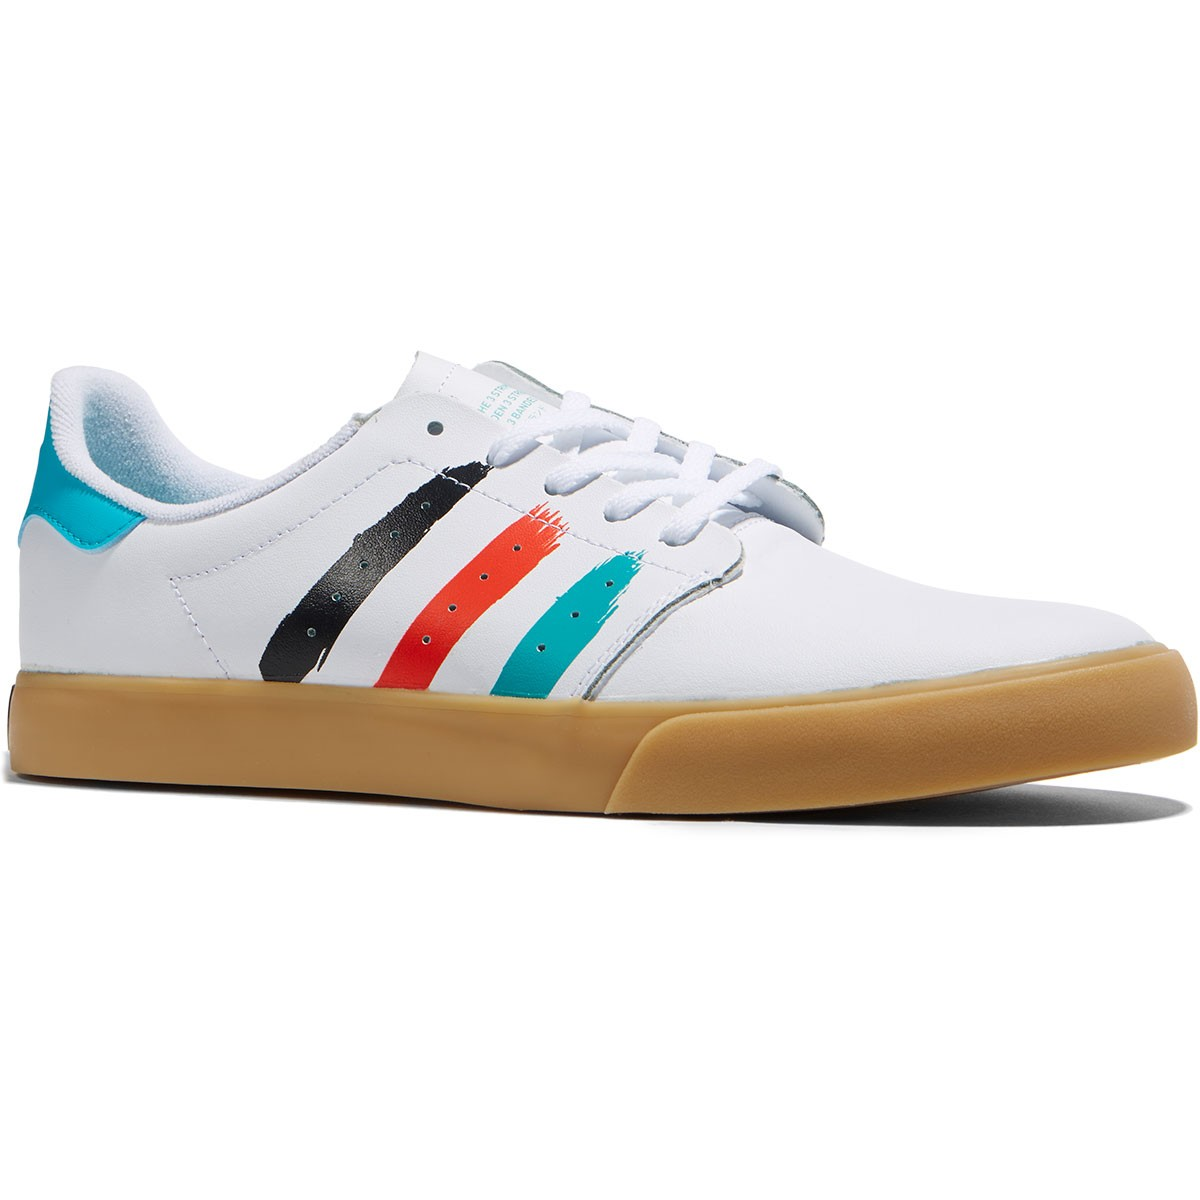 Adidas Seeley Court Shoes